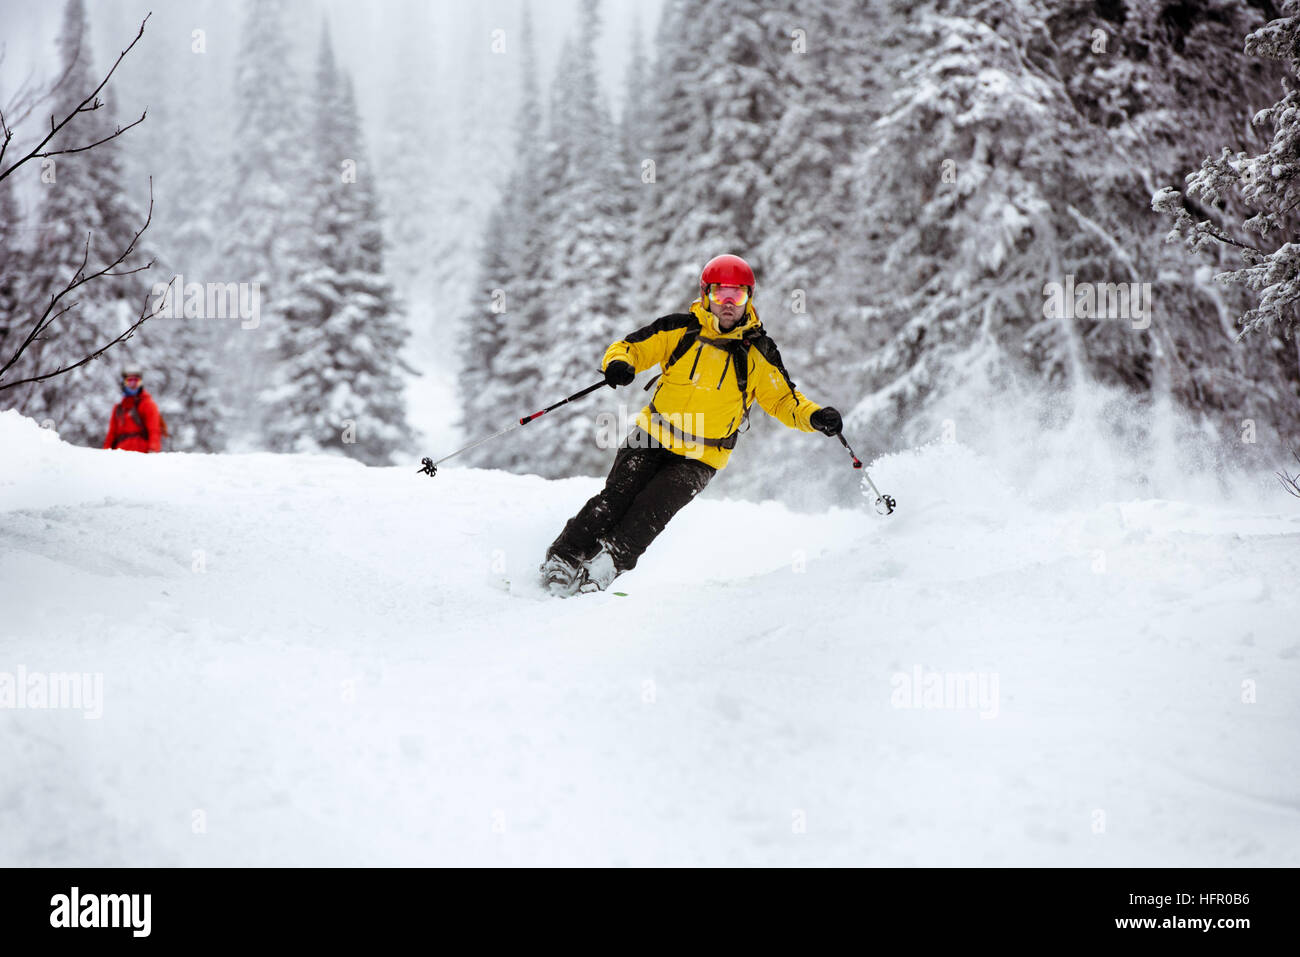 Ski skier off-piste backcountry resort - Stock Image